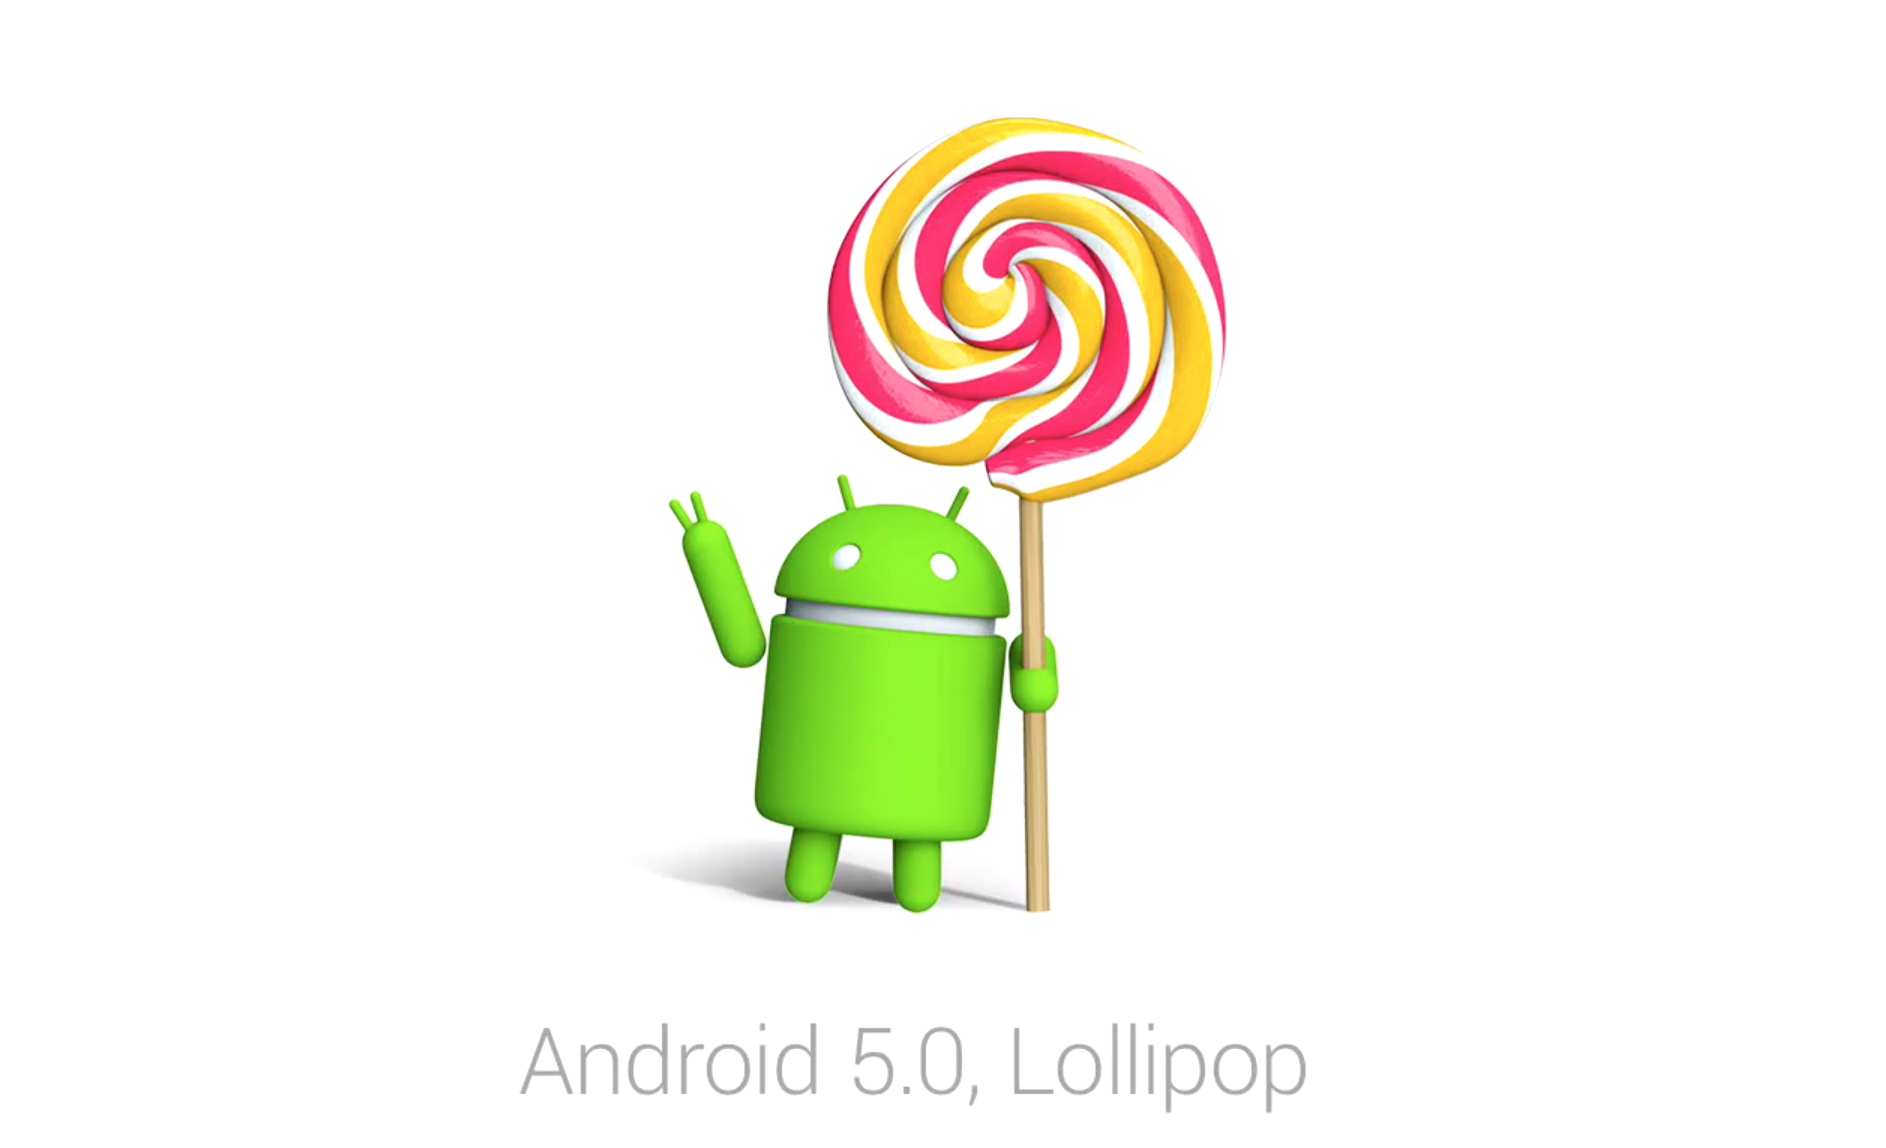 Android-5.0-Lollipop-avrmagazine